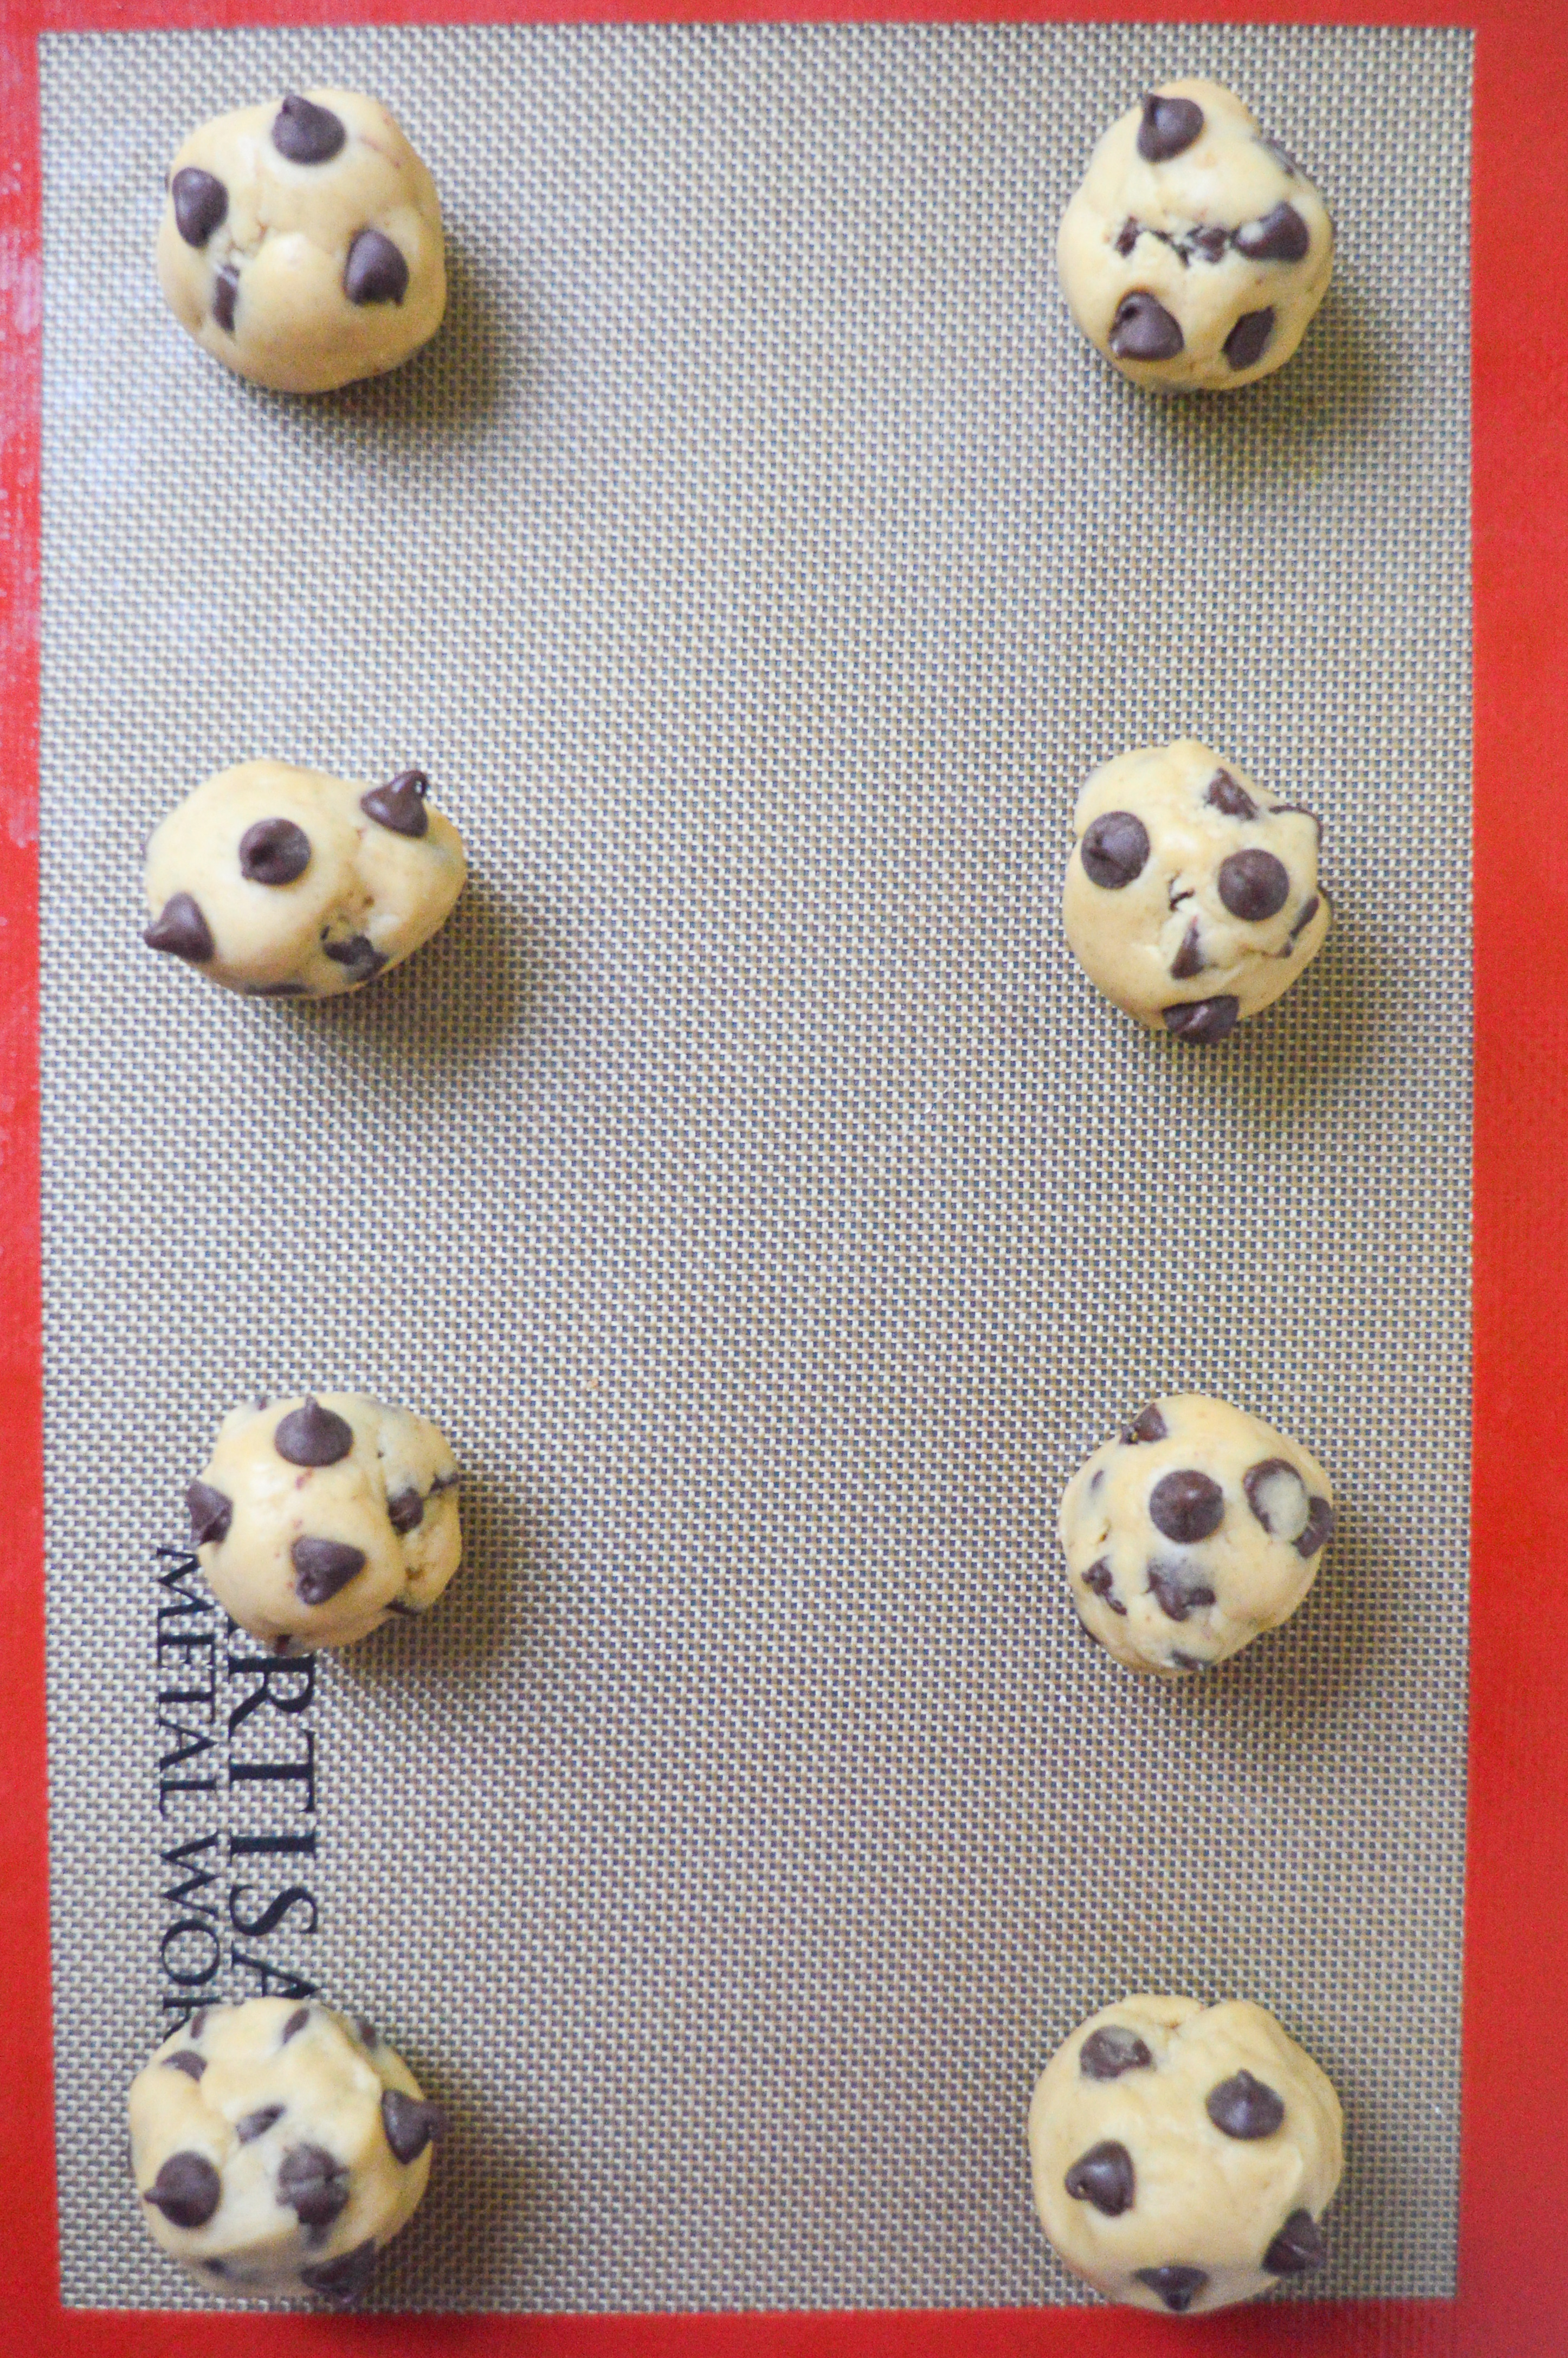 chewy-chocolate-chip-cookies-2